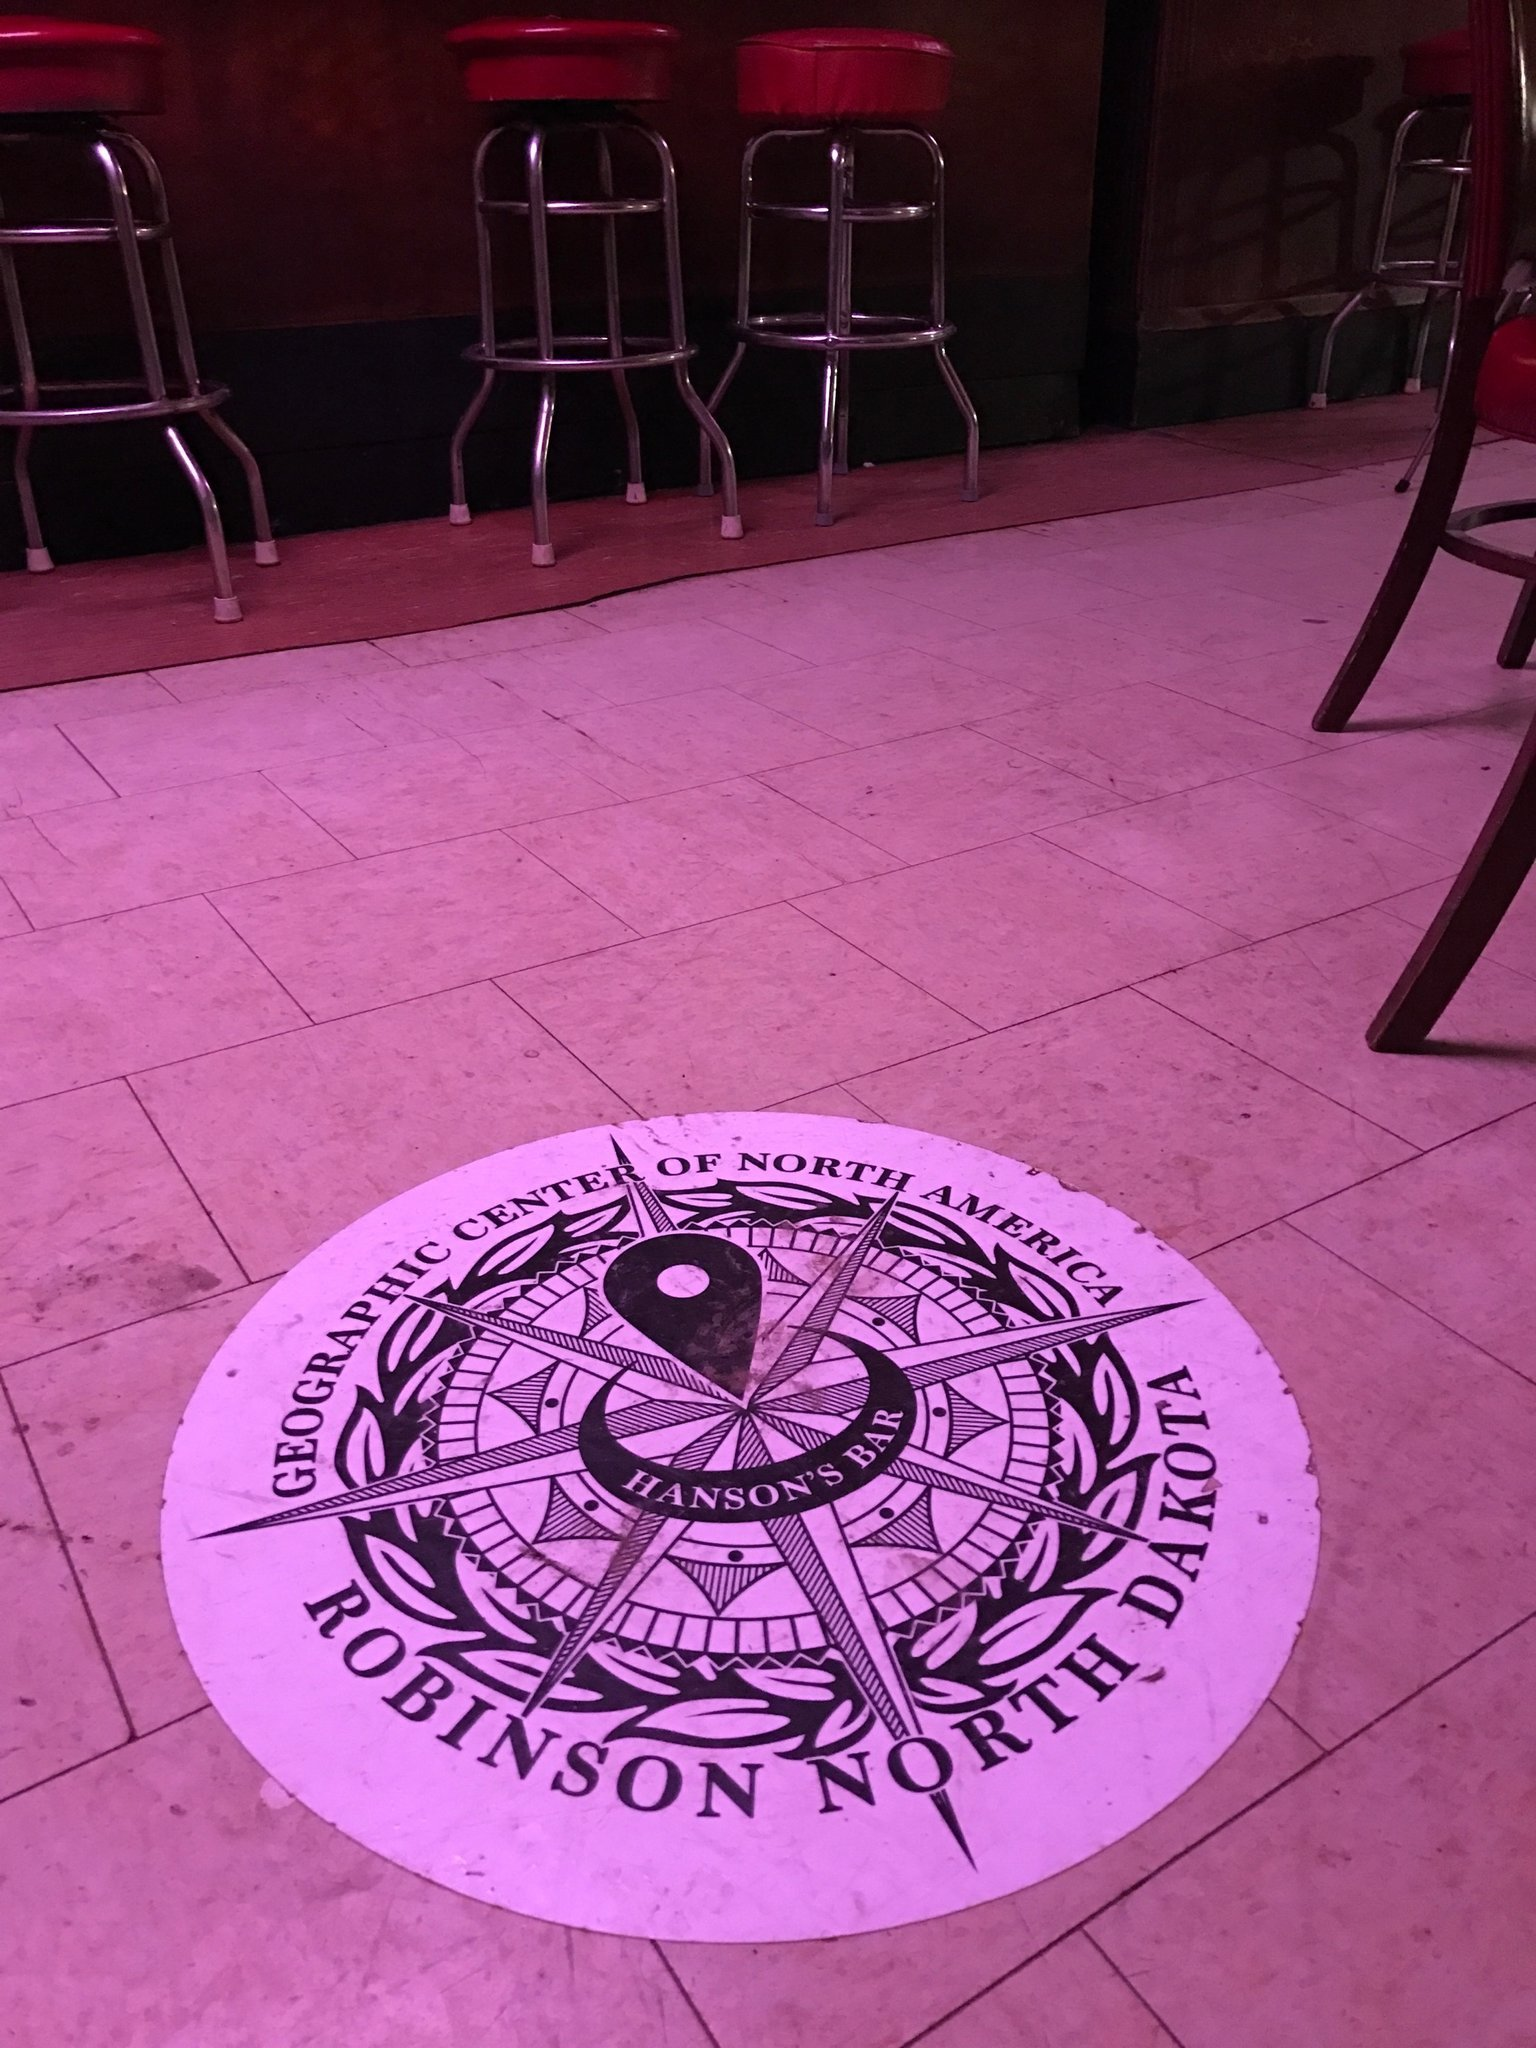 A decal on the floor of Hanson's Bar in Robinson, North Dakota.